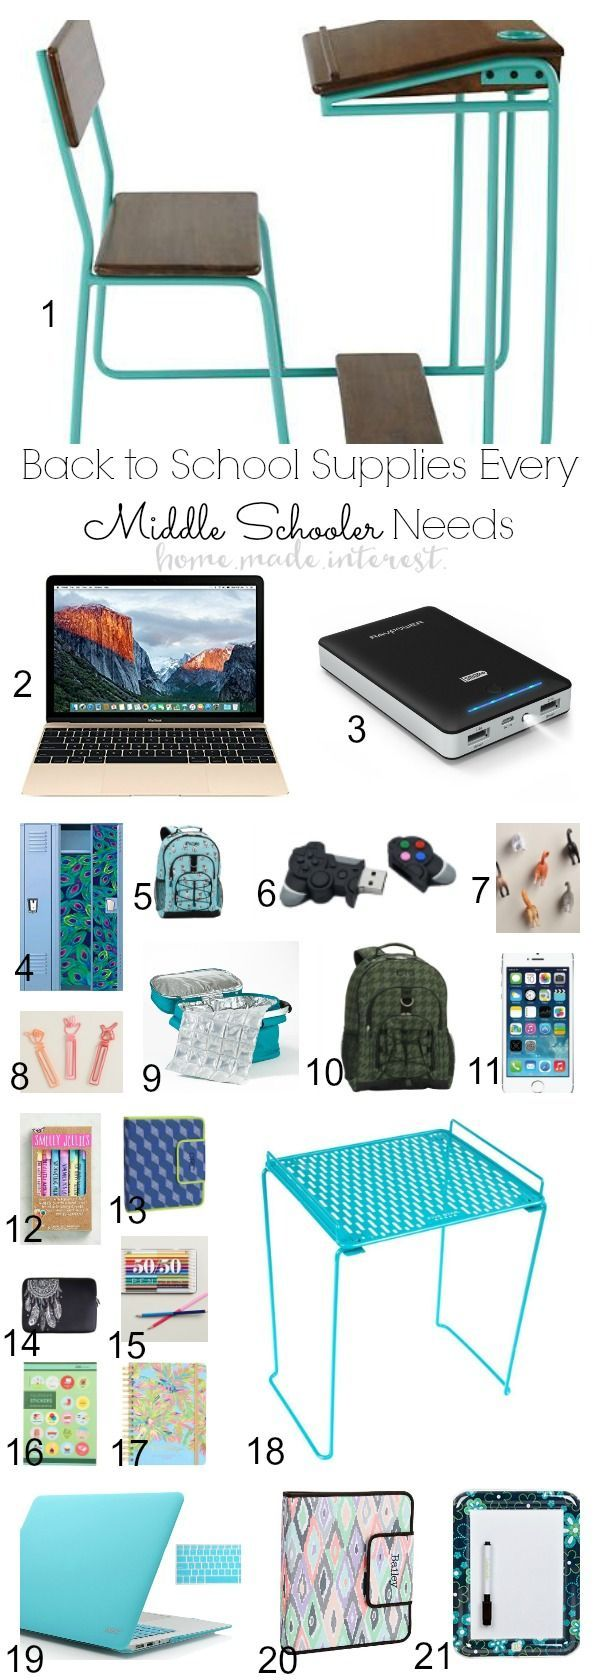 This simple list of Back to School Supplies for Middle School Boys & Girls has everything a kid needs for the classroom, organization and being cool! Whether your child is just starting school or headed into middle school this back to school supplies list is going to make getting prepared for school much easier!